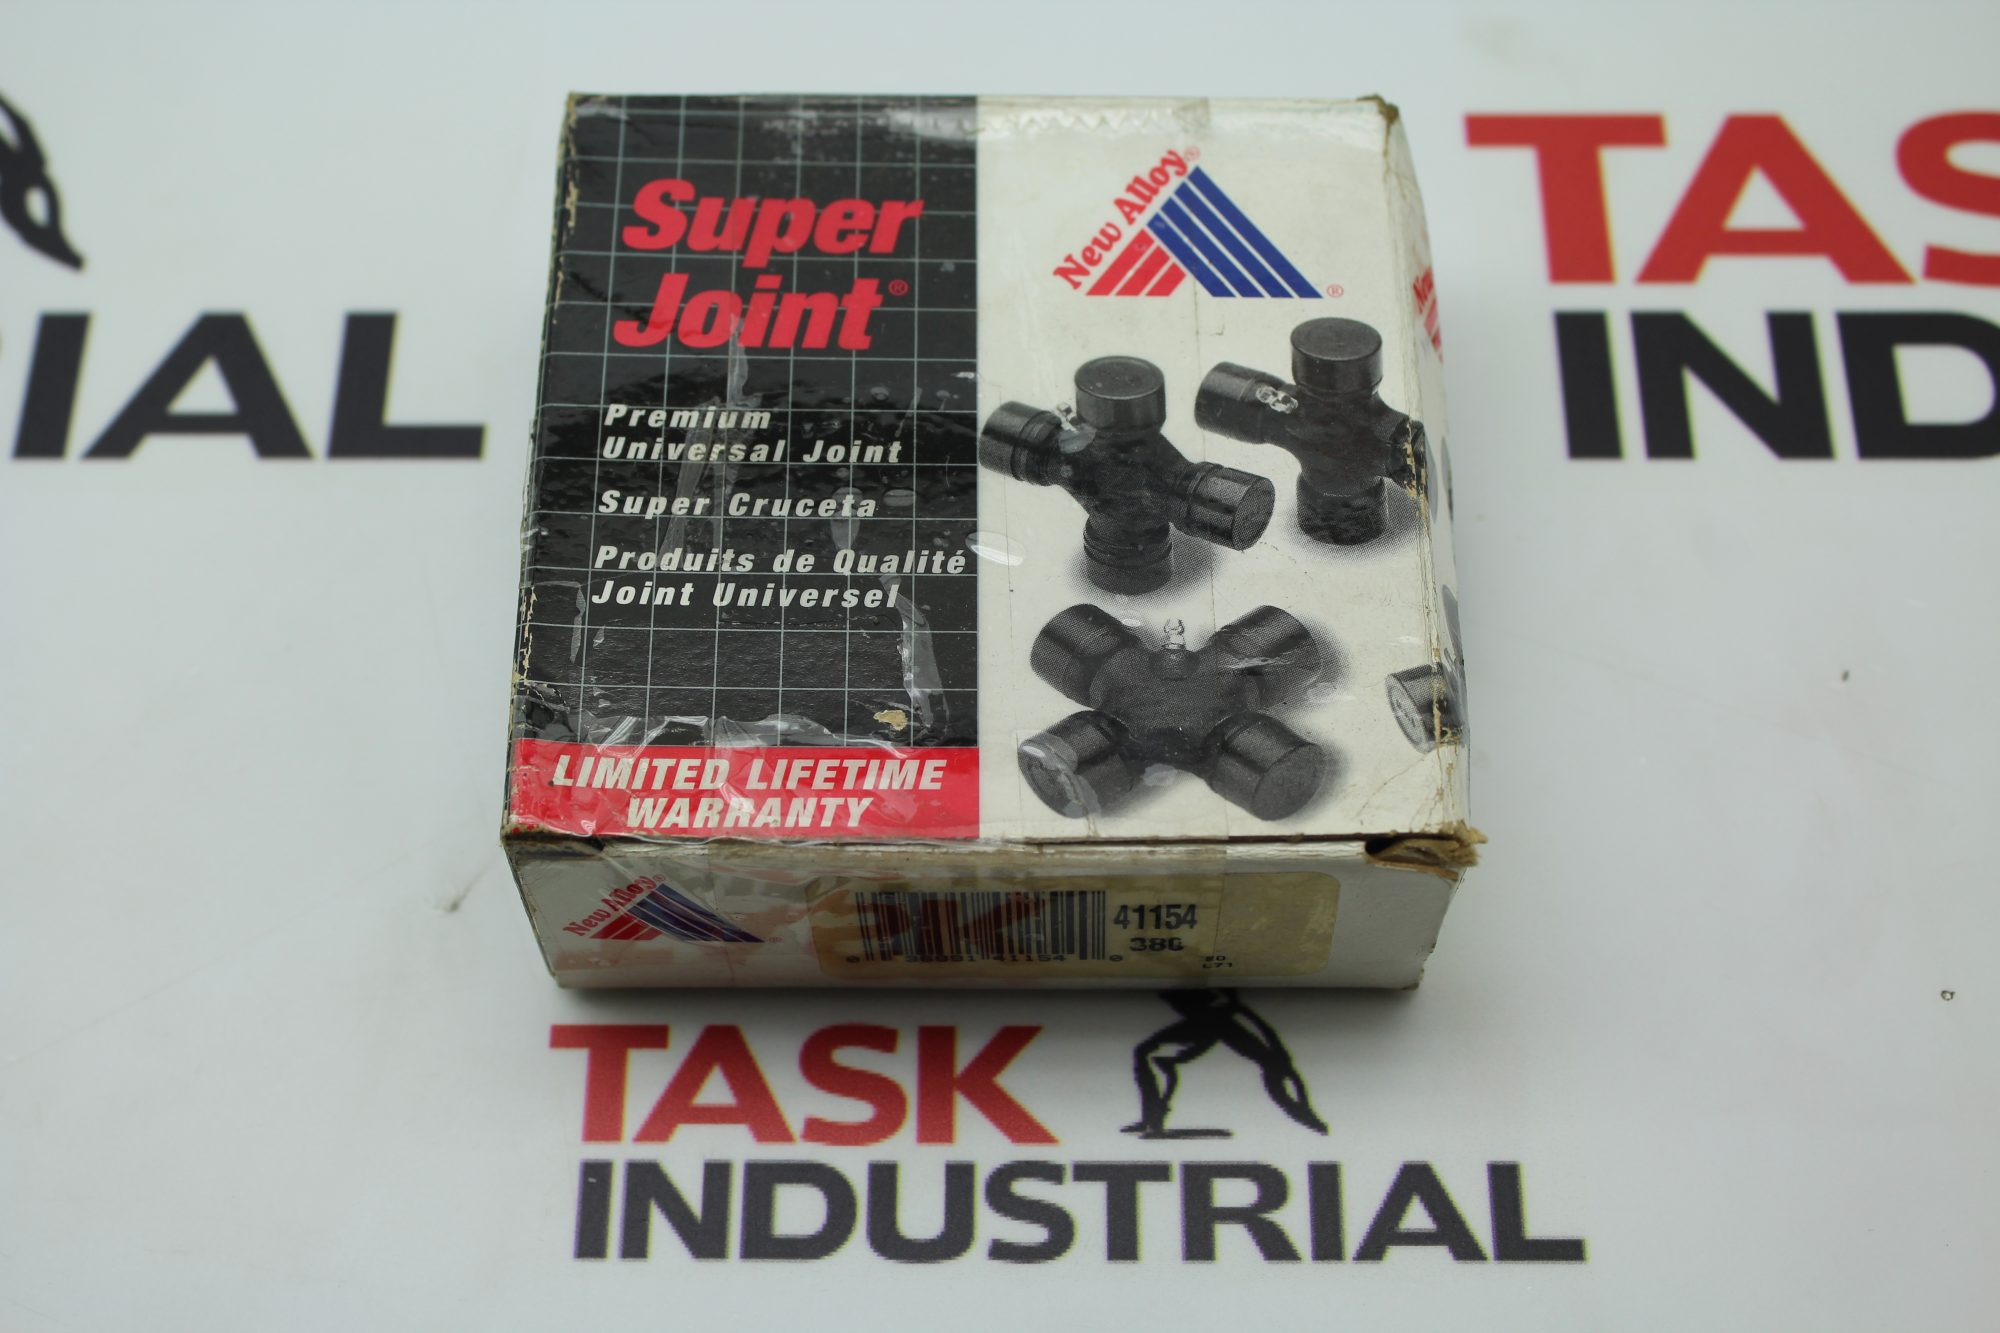 Super Joint U-Joint 41154/380